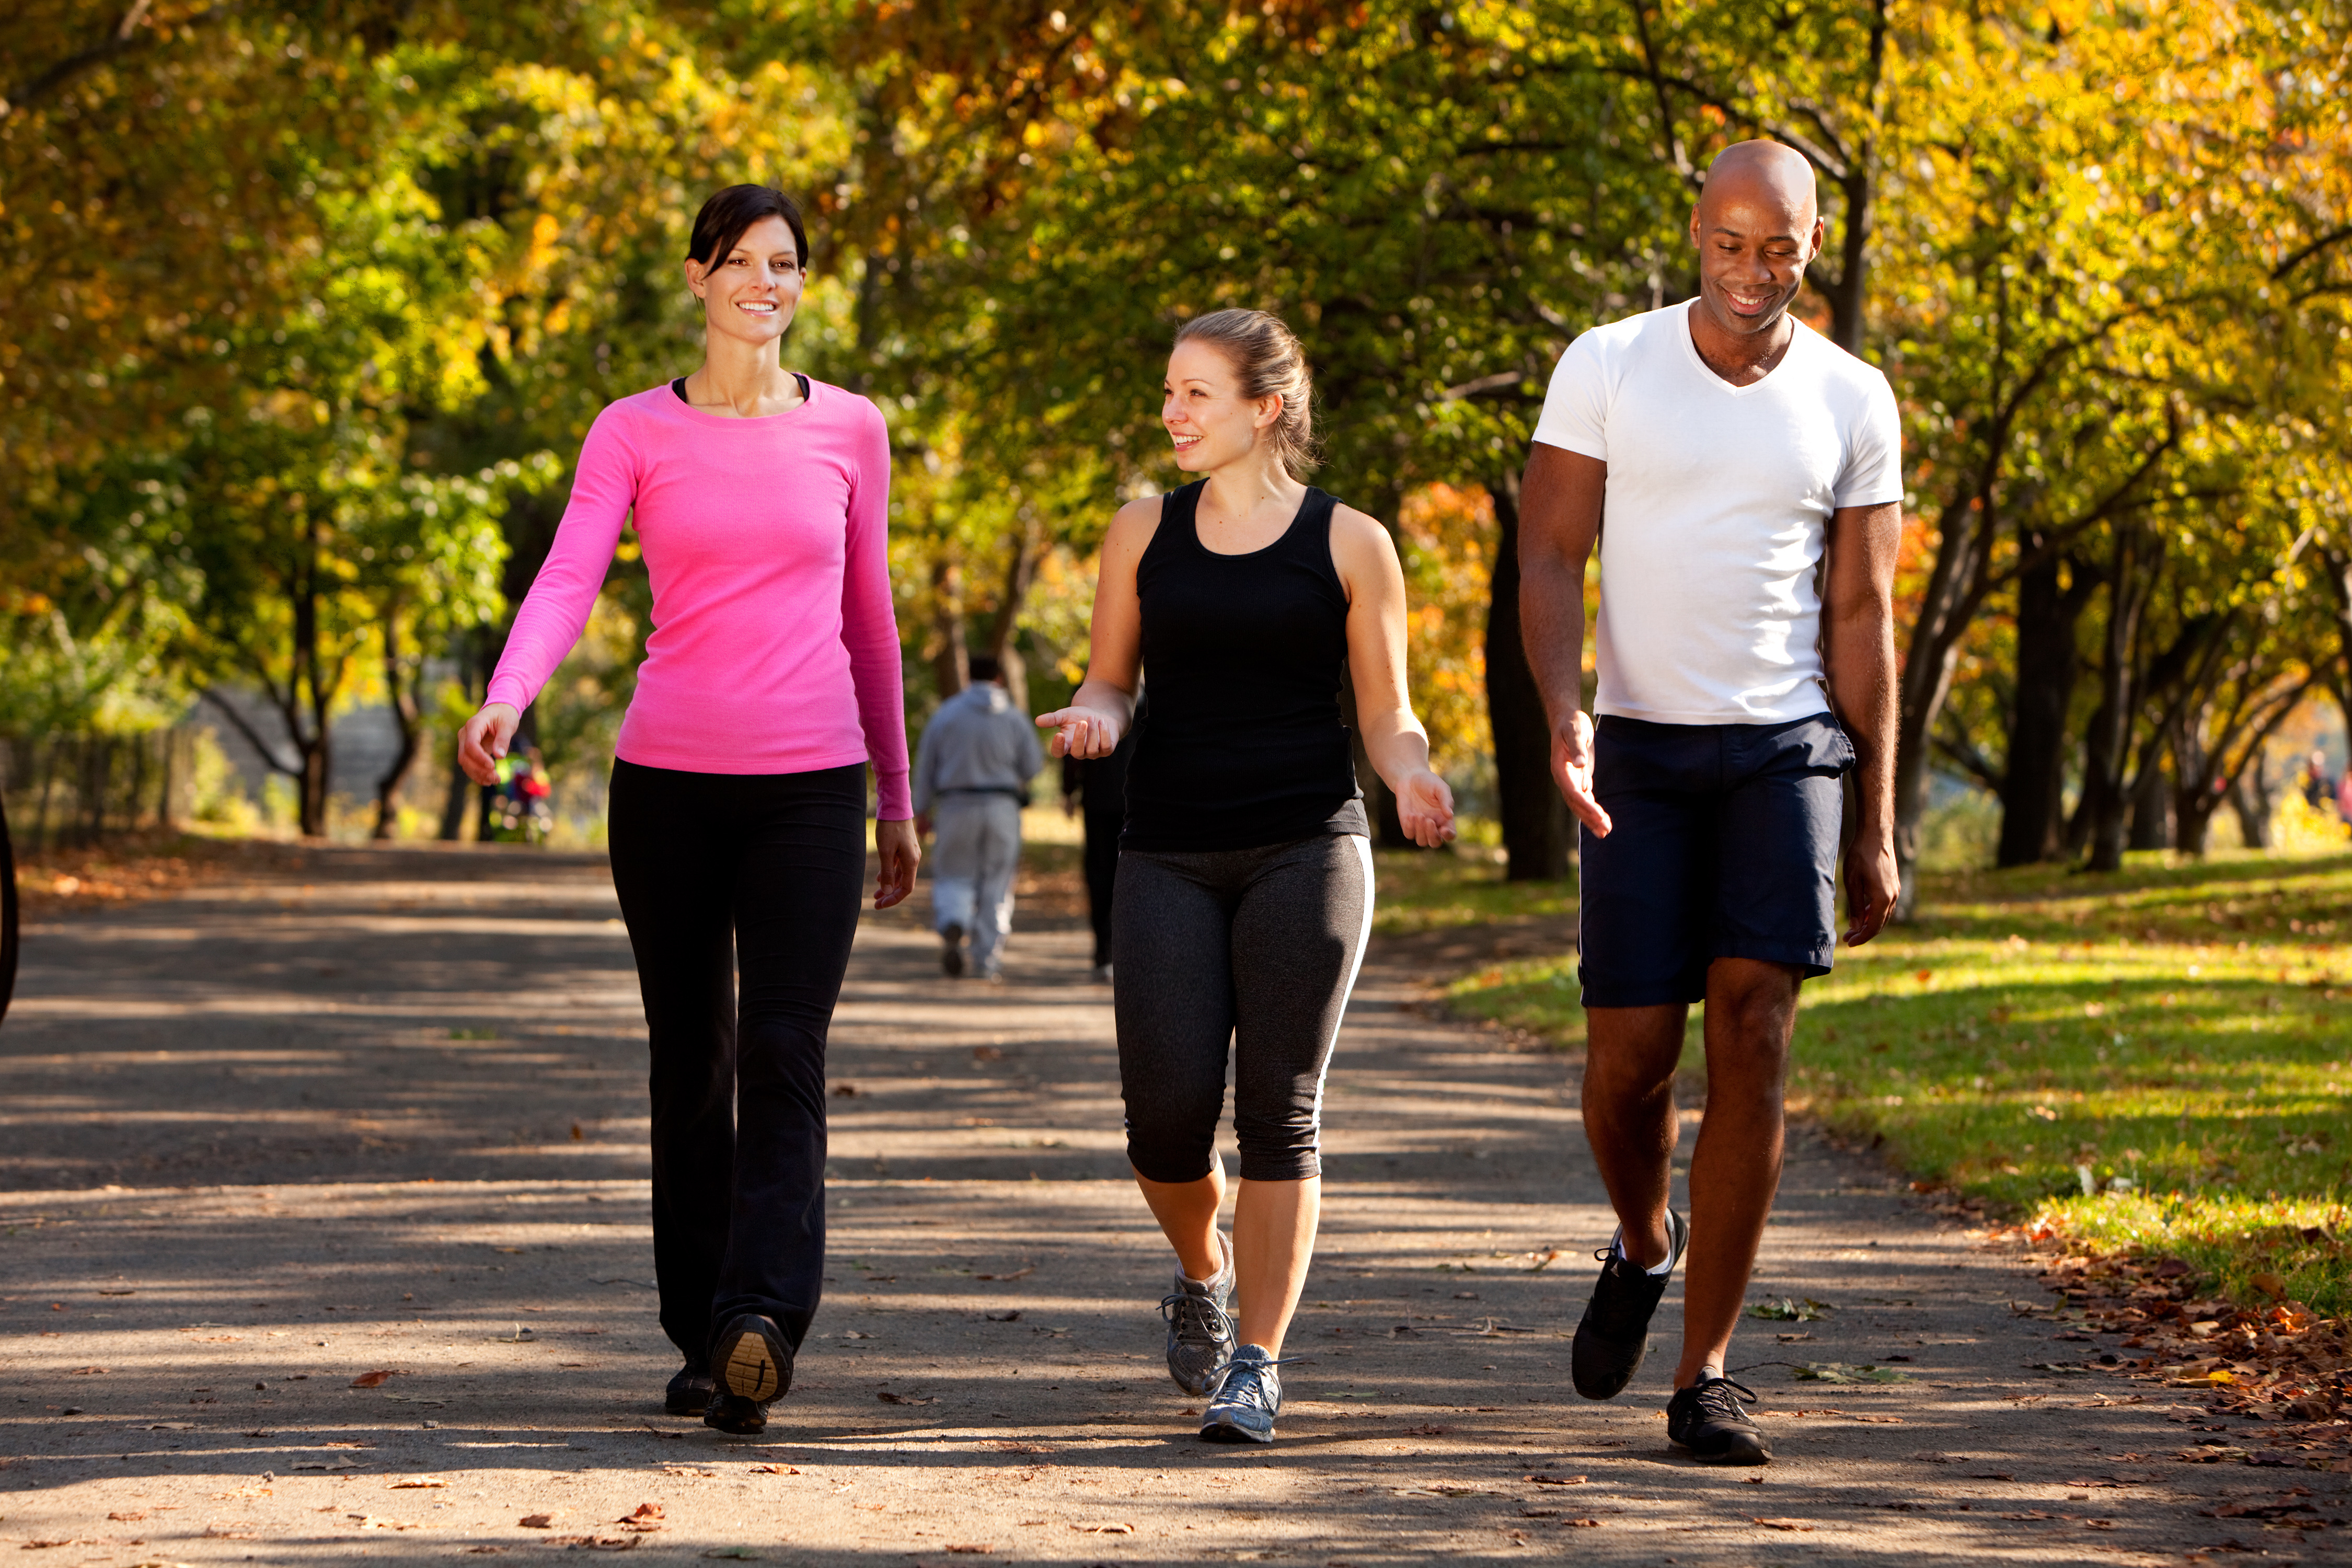 You'll meet health guidelines by walking 10,000 steps a day — but that's not an absolute goal for everyone. On expert suggests walking 2,000 more steps than the usual 4,000 to 5,000 steps the average American walks every day.